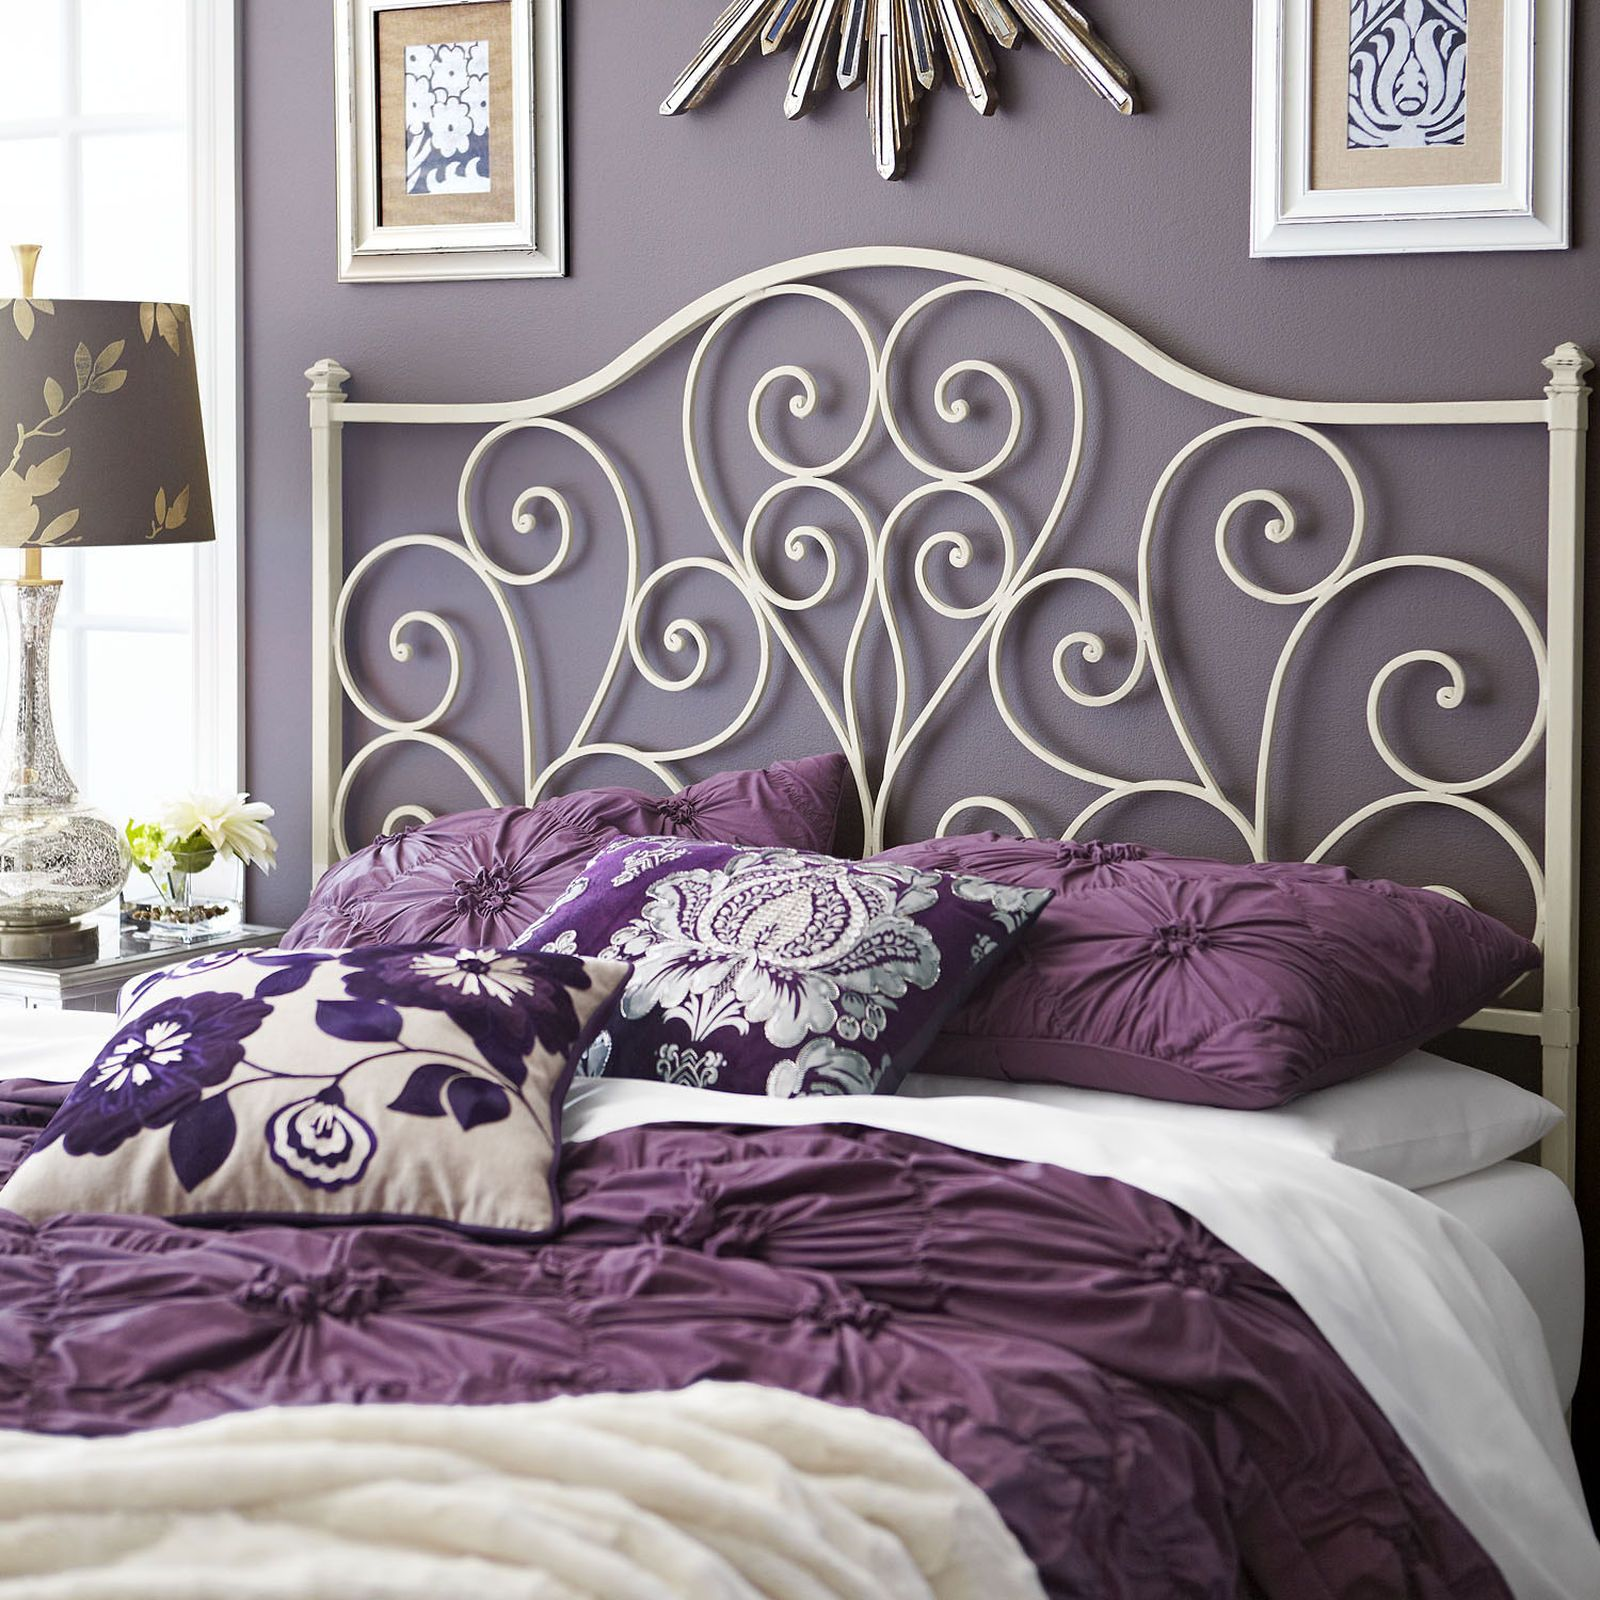 For Those Who Heart Vintage Style Headboards Our Wrought Iron Design Is Accented With Heart Shaped Scr White Headboard Headboard Styles Wrought Iron Headboard